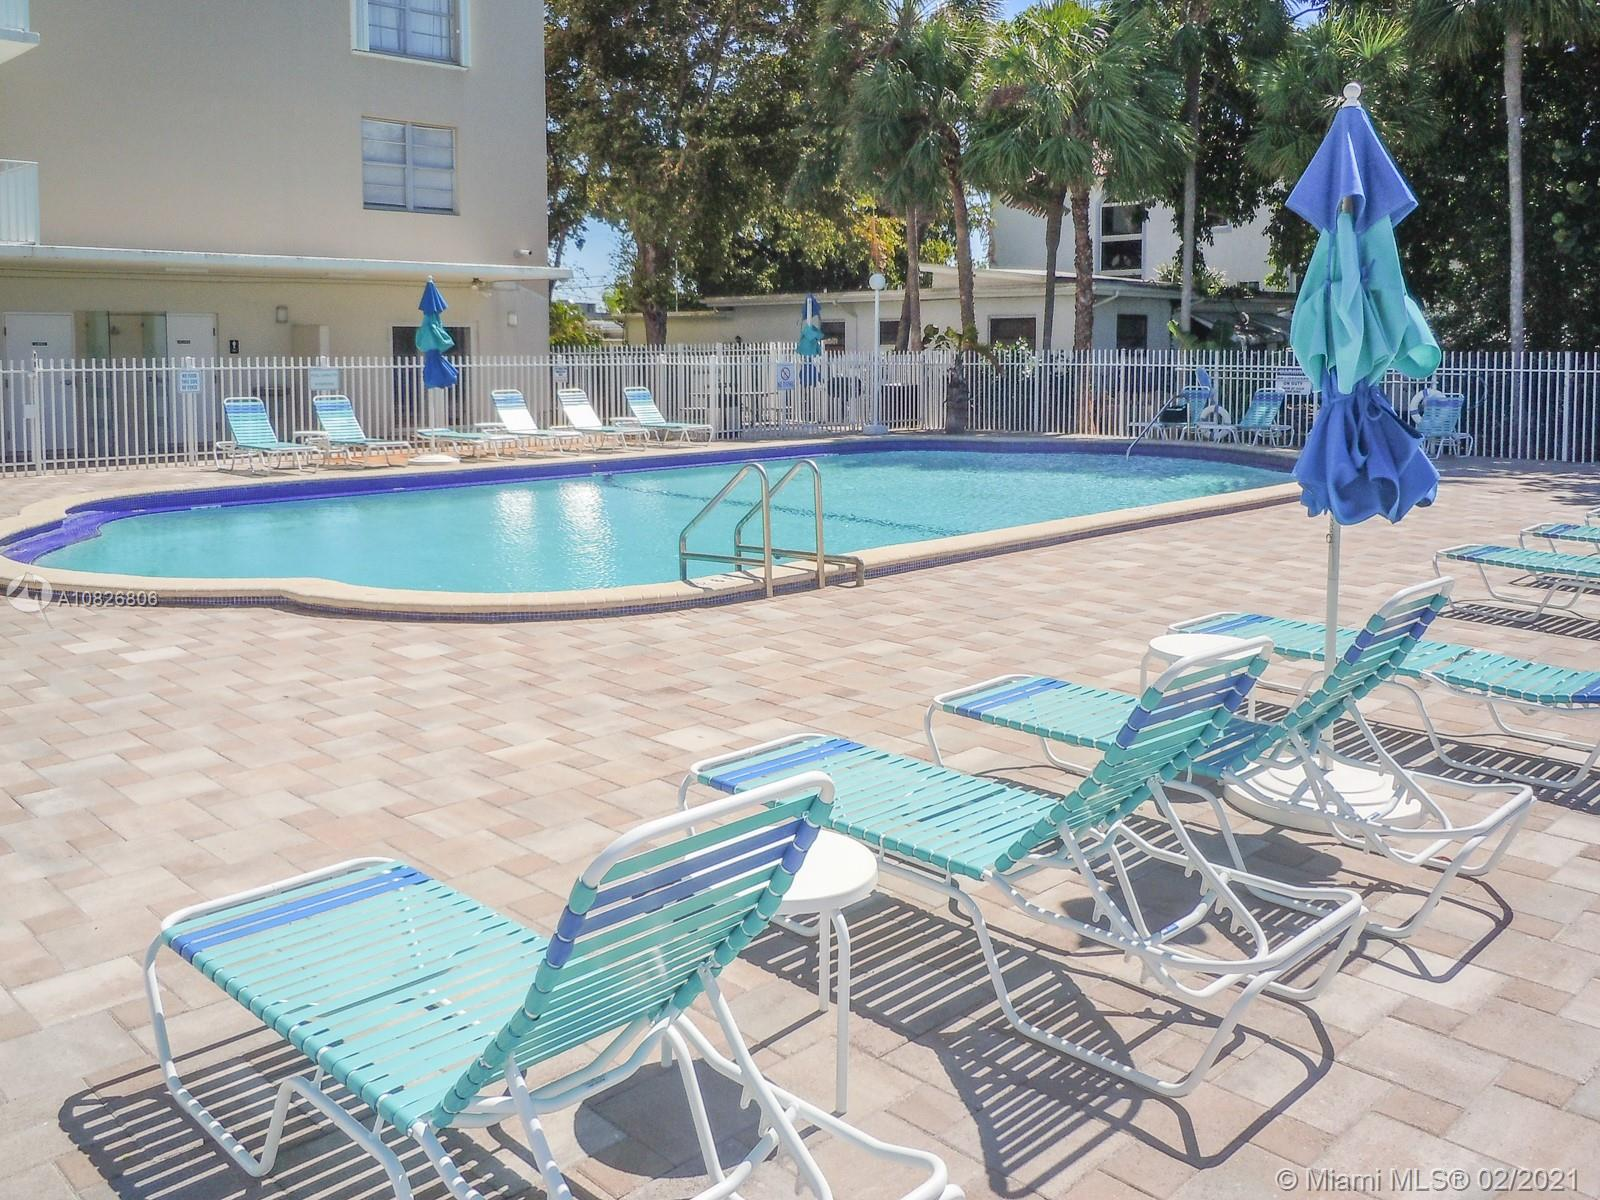 Island Place, 1455 N Treasure Dr Unit 7 D, North Bay Village, Florida 33141, image 46